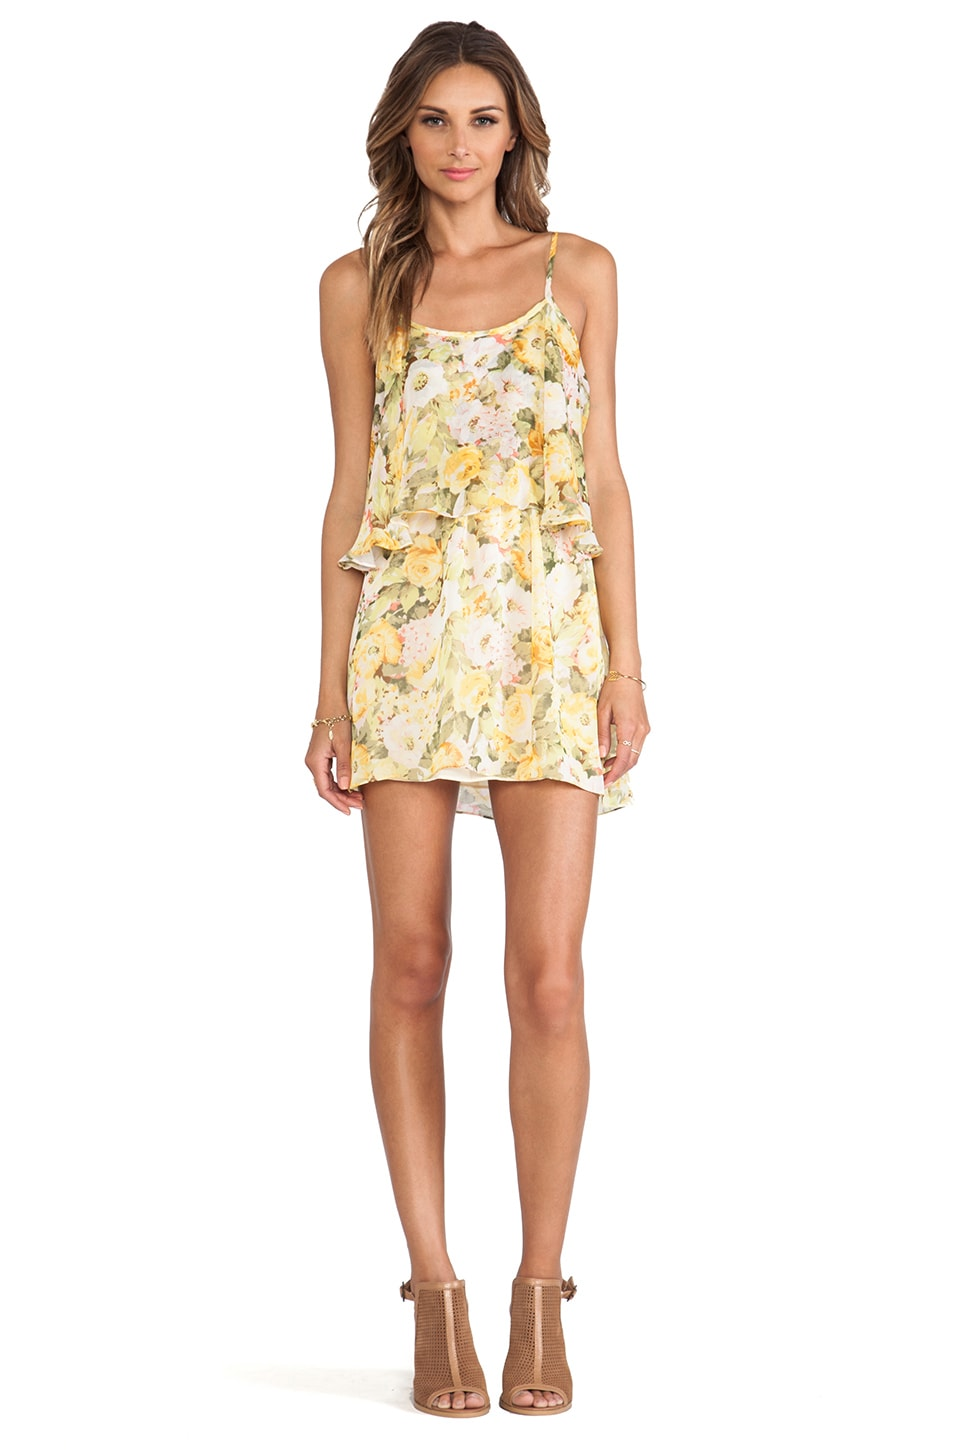 Lovers + Friends Sunkissed Dress in Floral